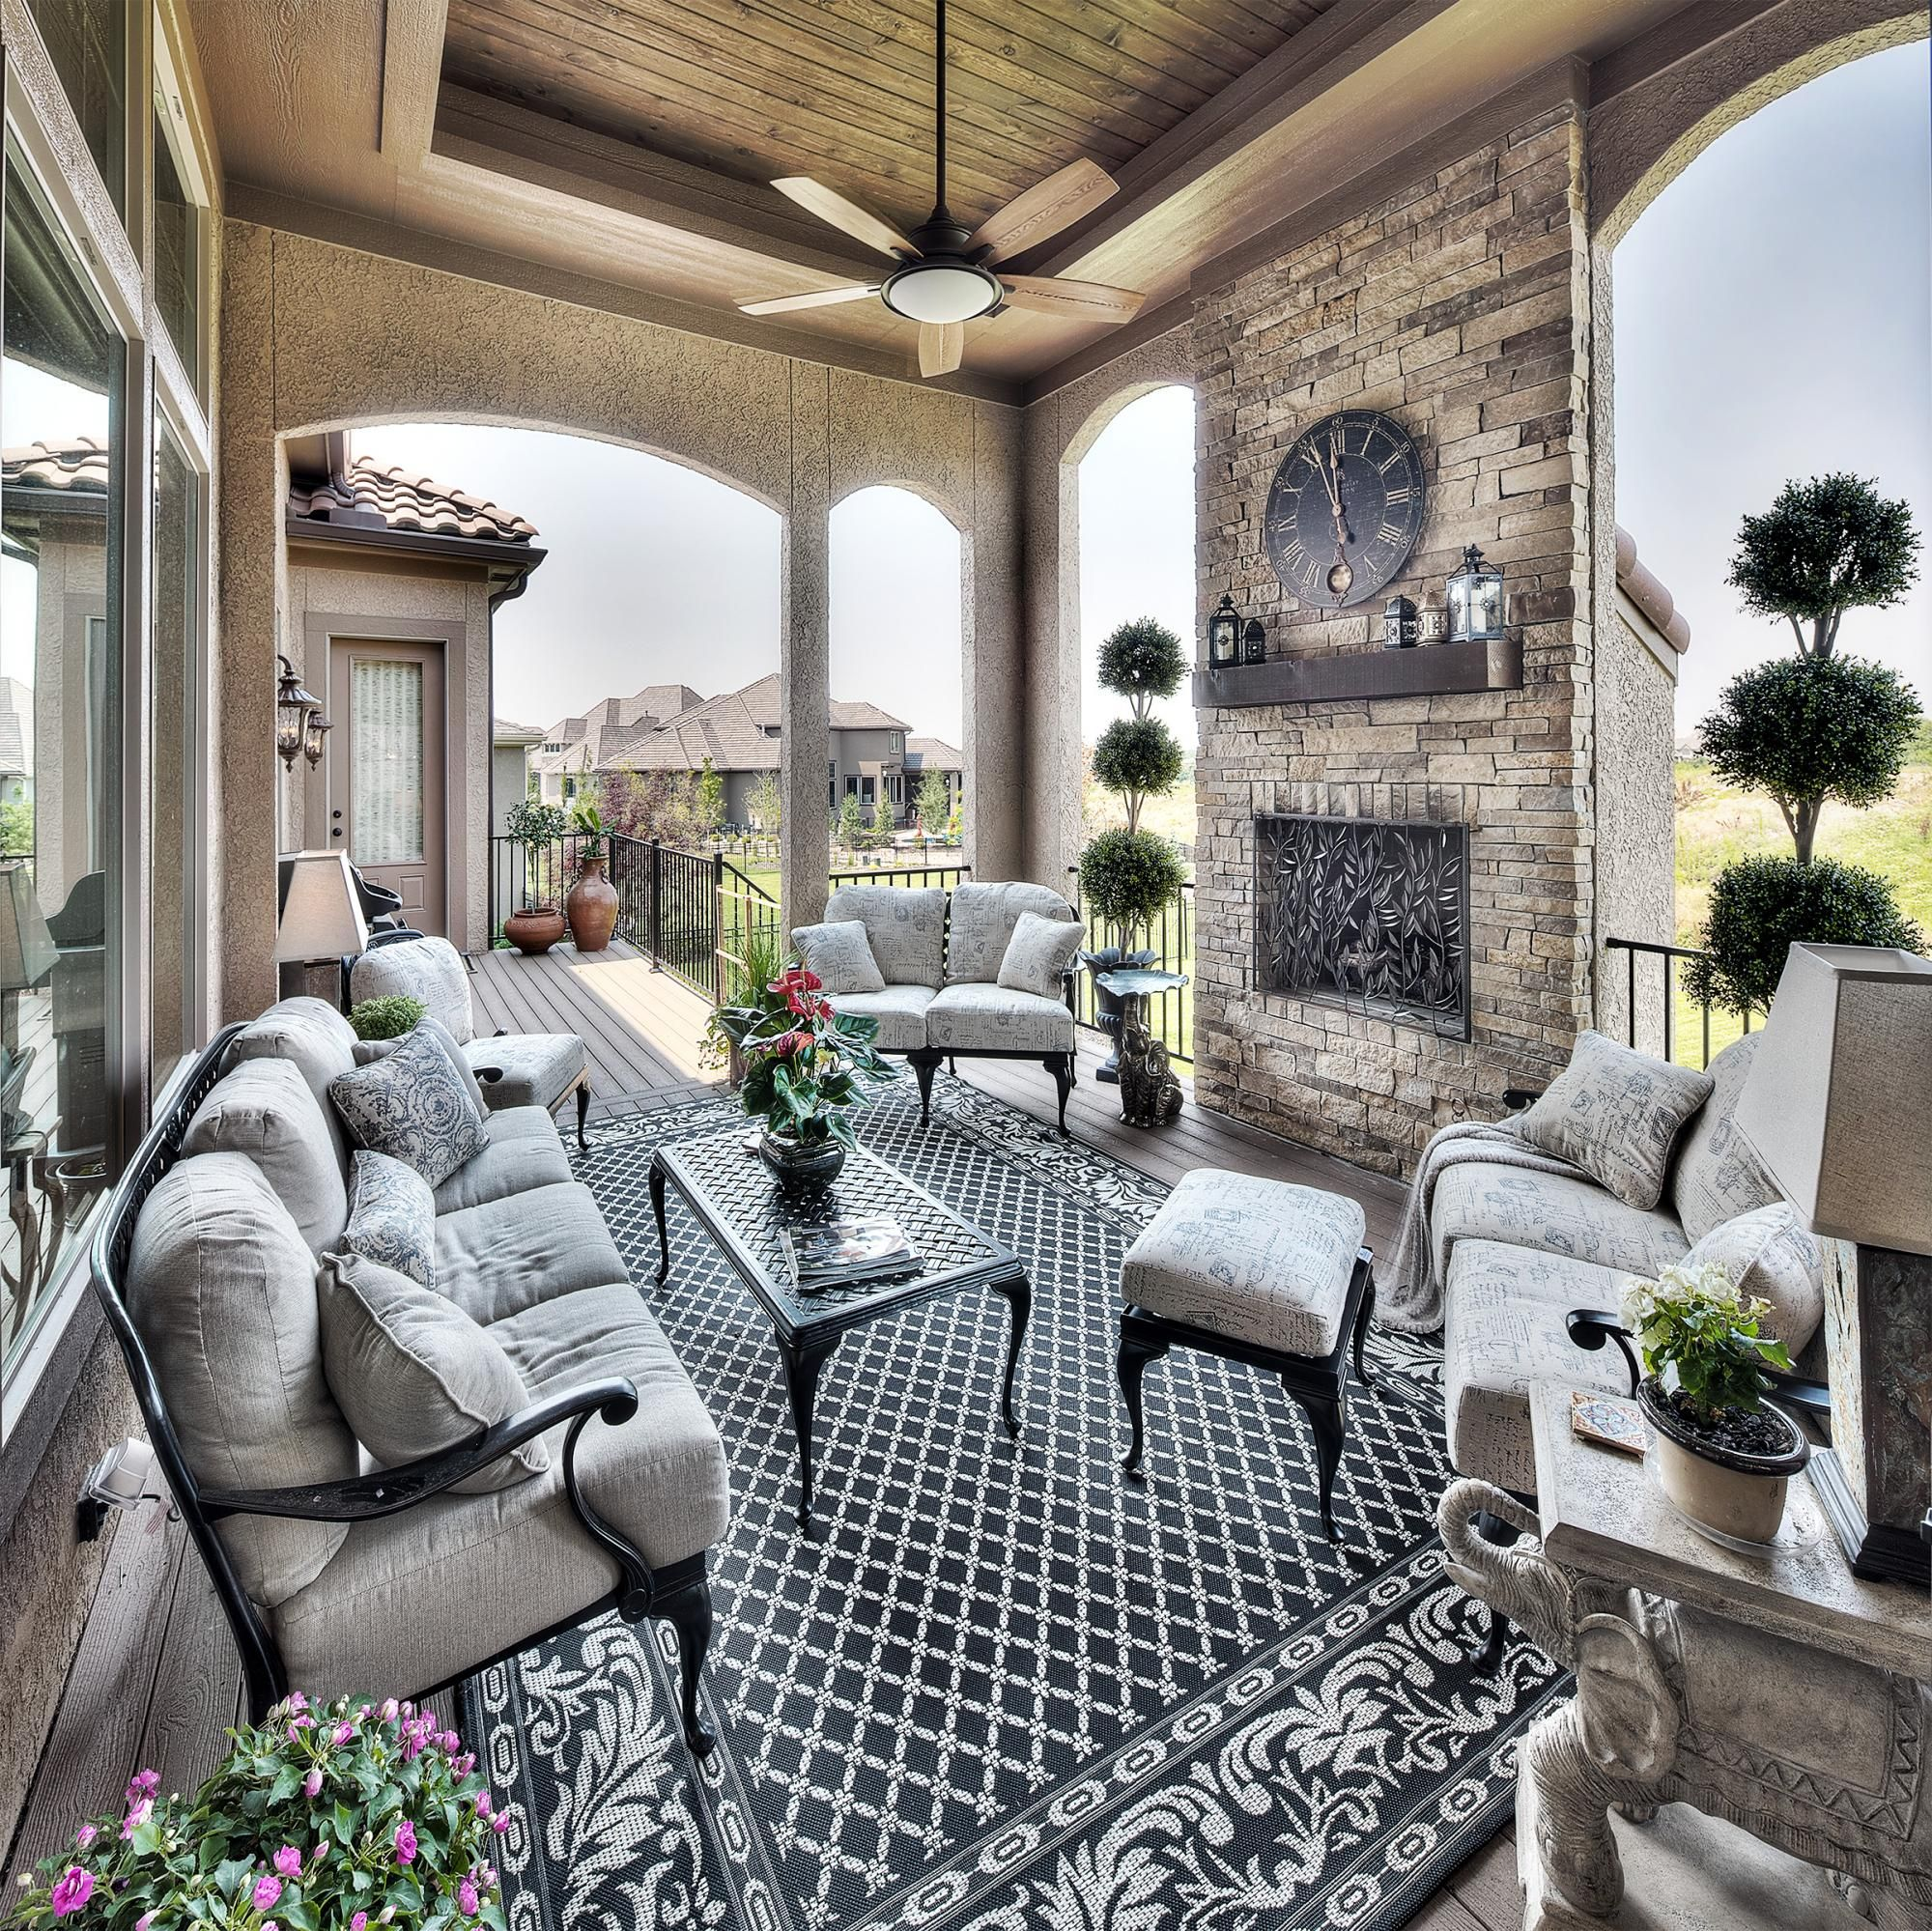 Outdoor Living Photo Gallery